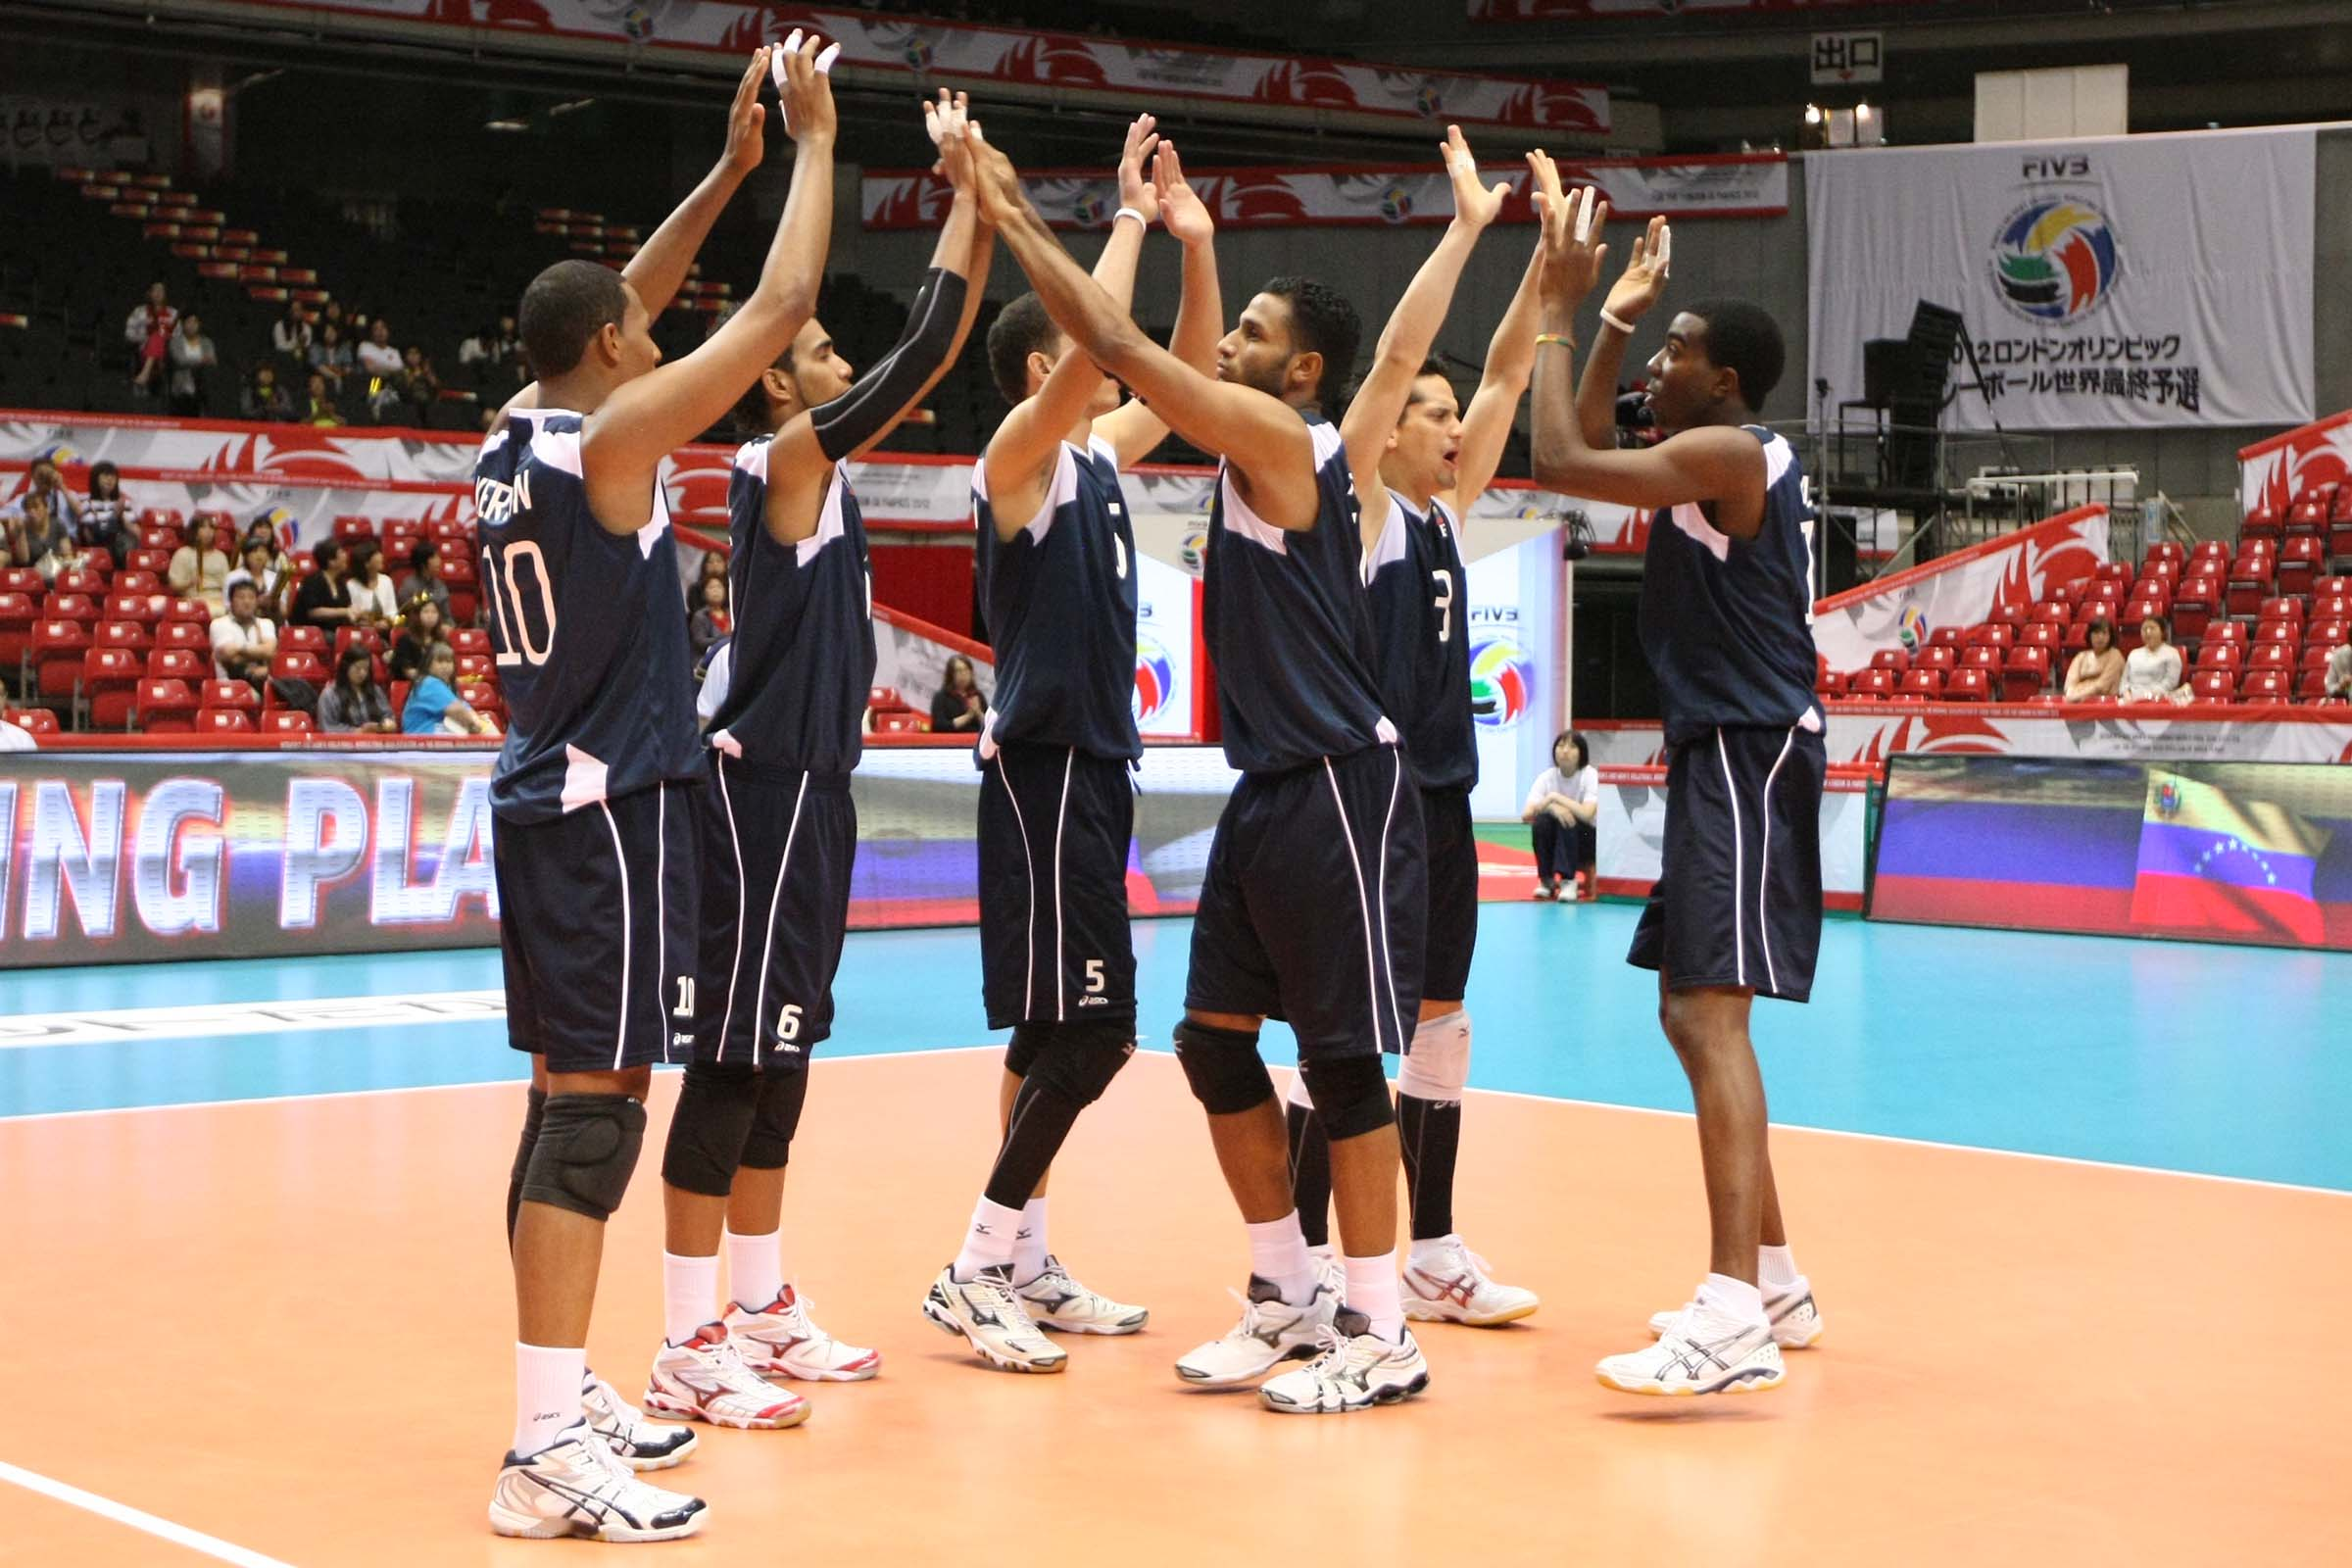 http://www.fivb.org/Vis2009/Images/GetImage.asmx?No=201208352&maxsize=500